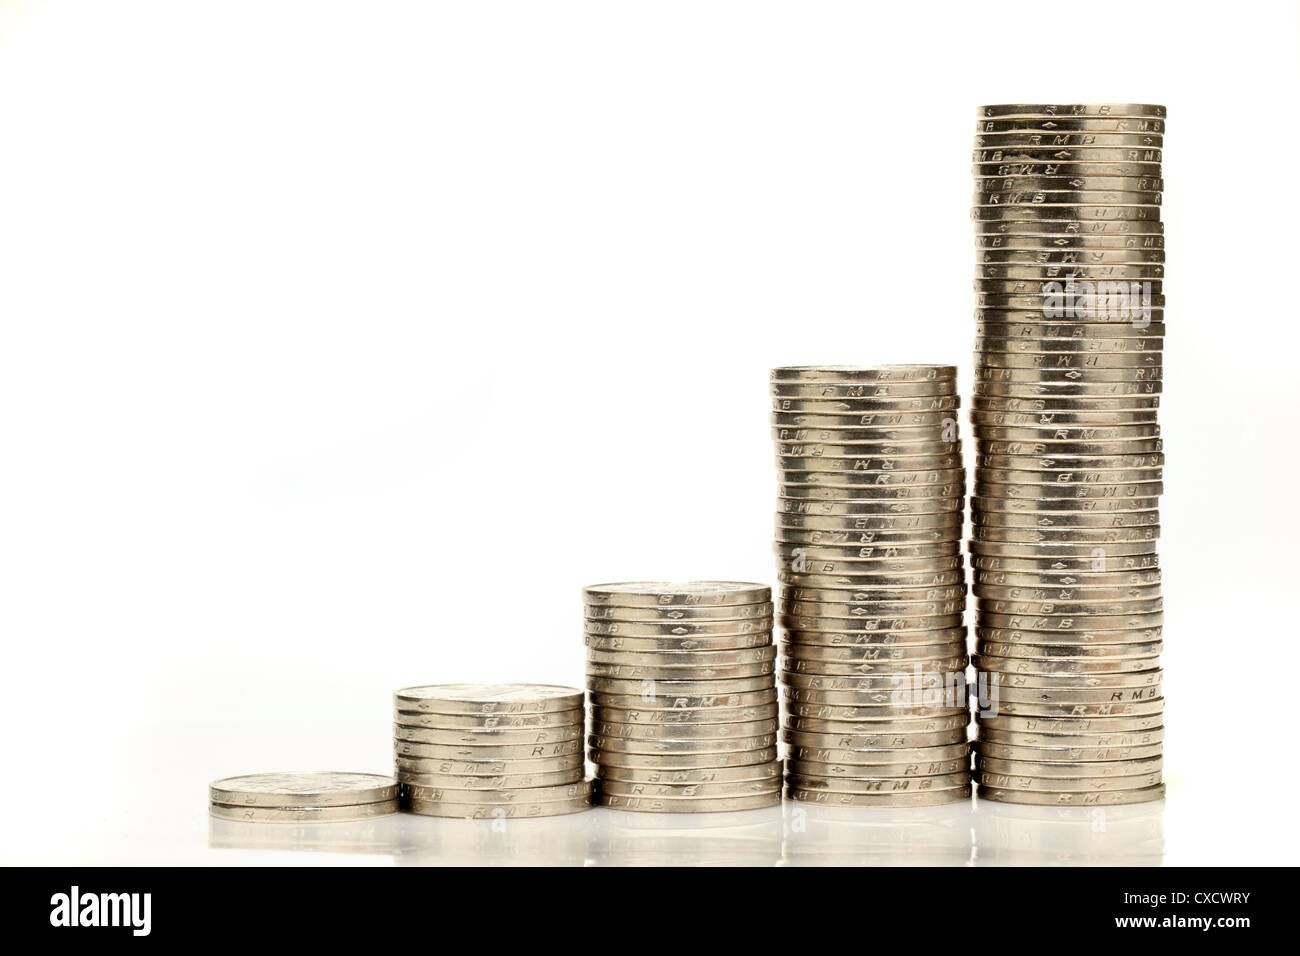 Chinese coin stacks showing growth - Stock Image